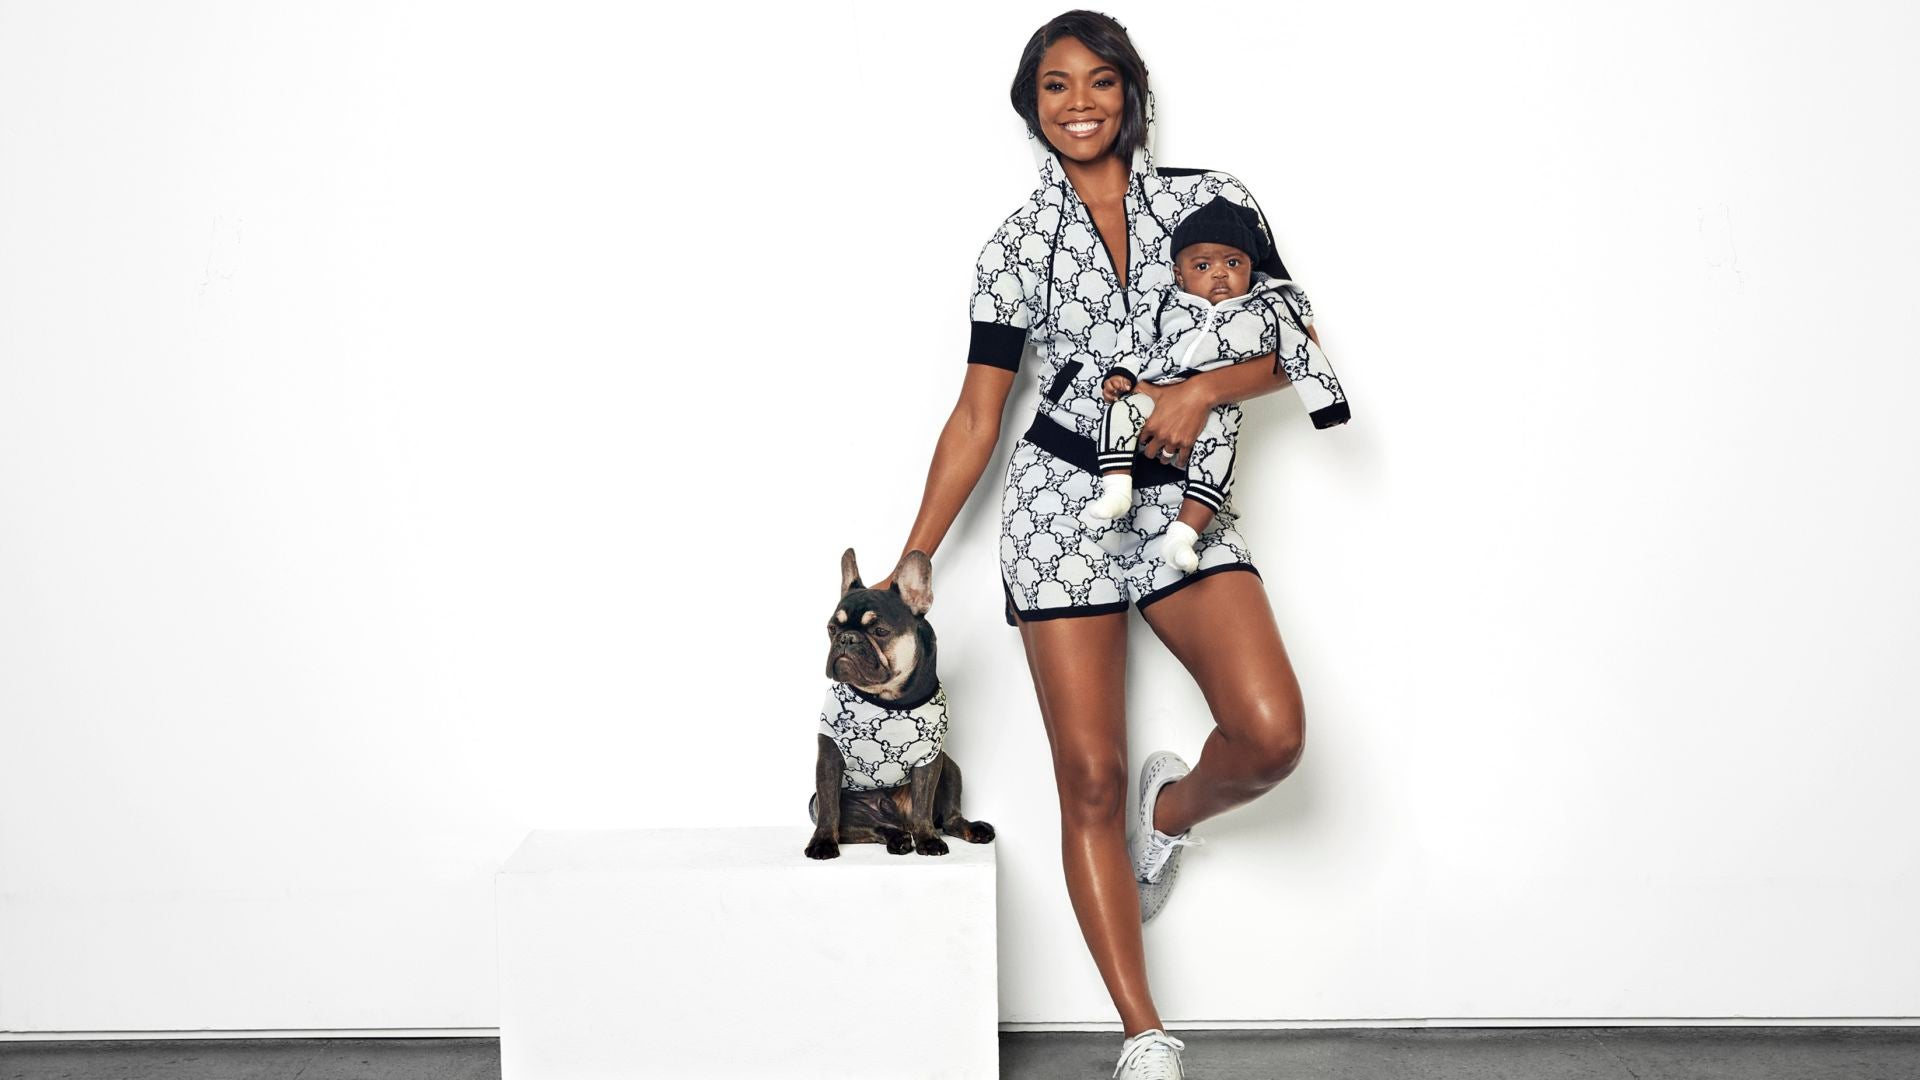 'Kaavi James by Gabrielle Union' Is All Sorts of Mommy & Me Goodness